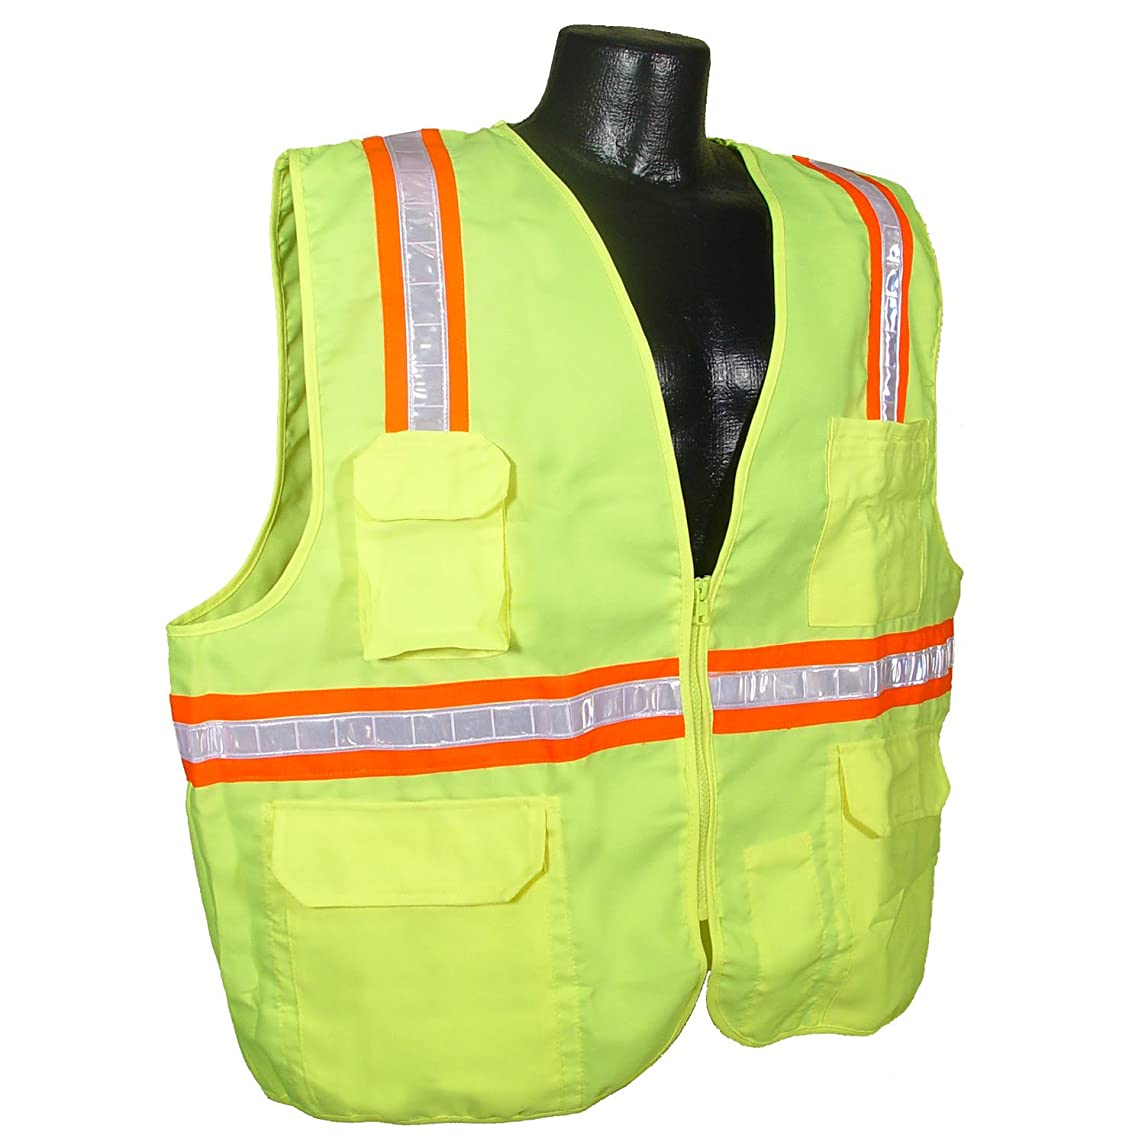 Radians SV61-NZGS-2X Two Tone Solid Economic Surveyor Non Rated Safety Vest, Green, 2 Extra Large